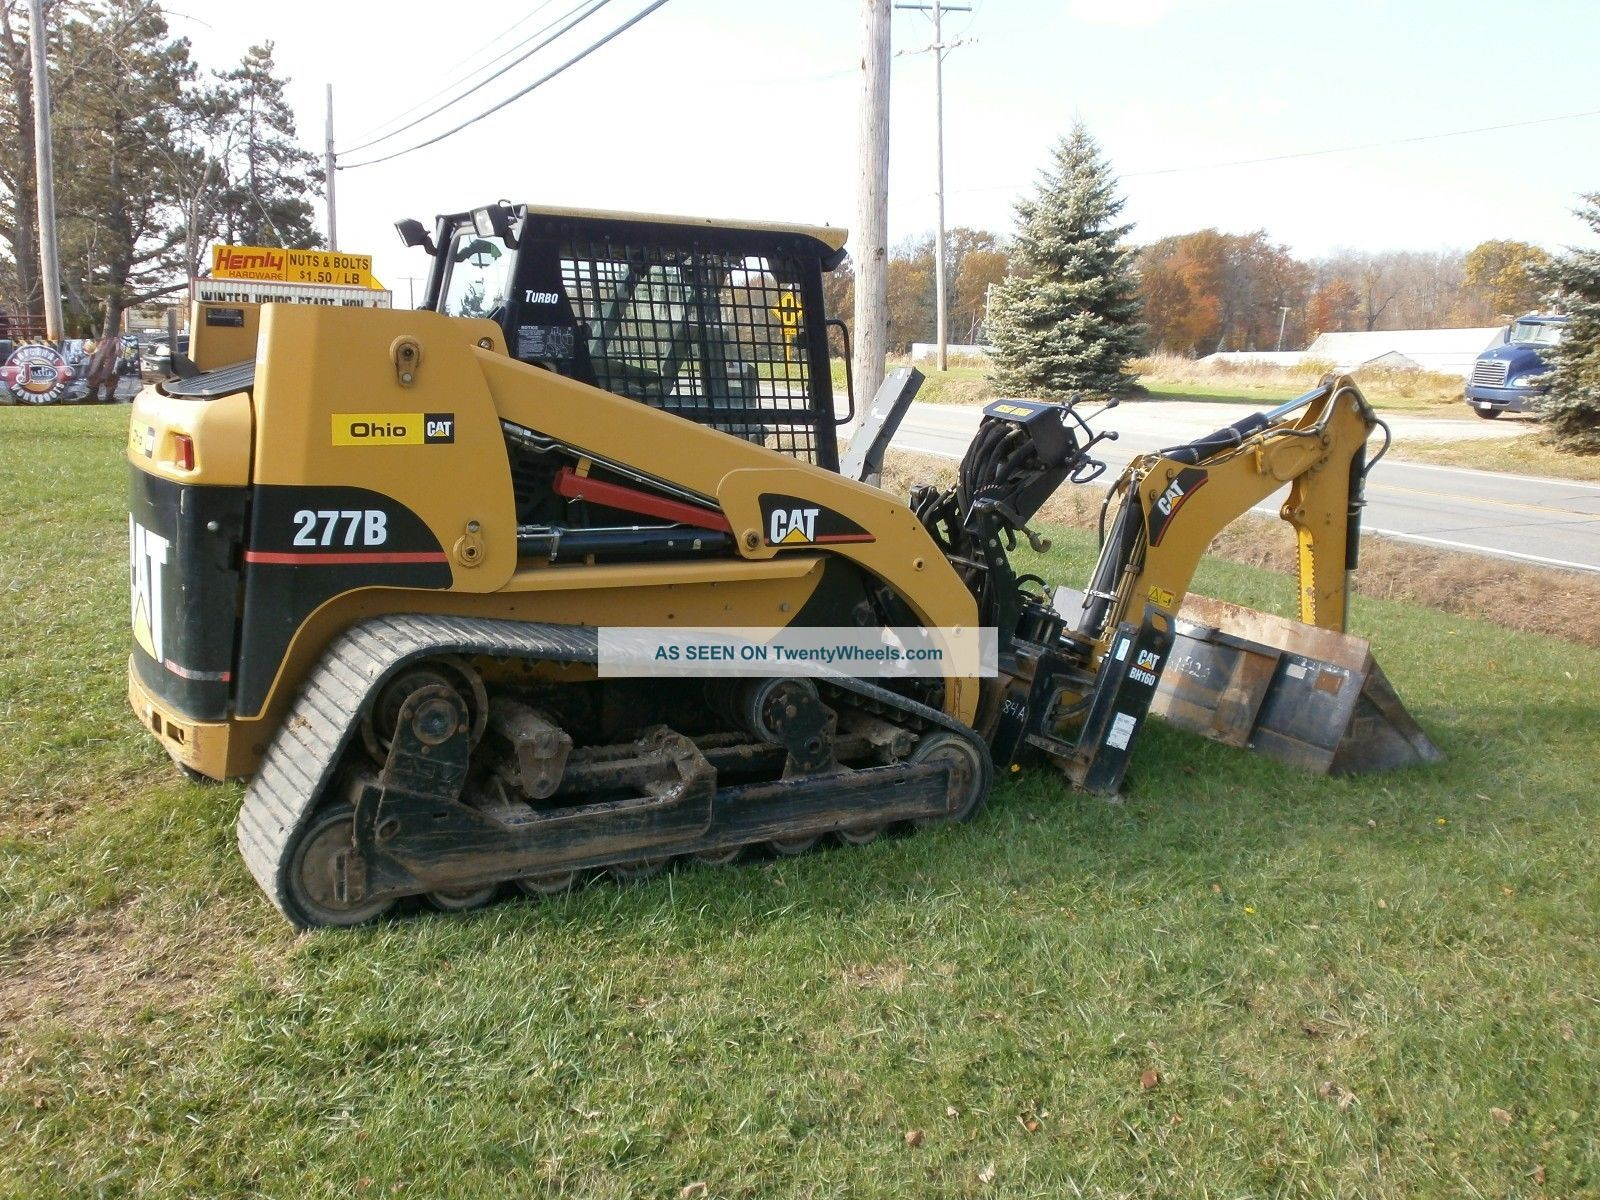 2006 Caterpillar 277b Cat Track Skid Steer Loader Backhoe